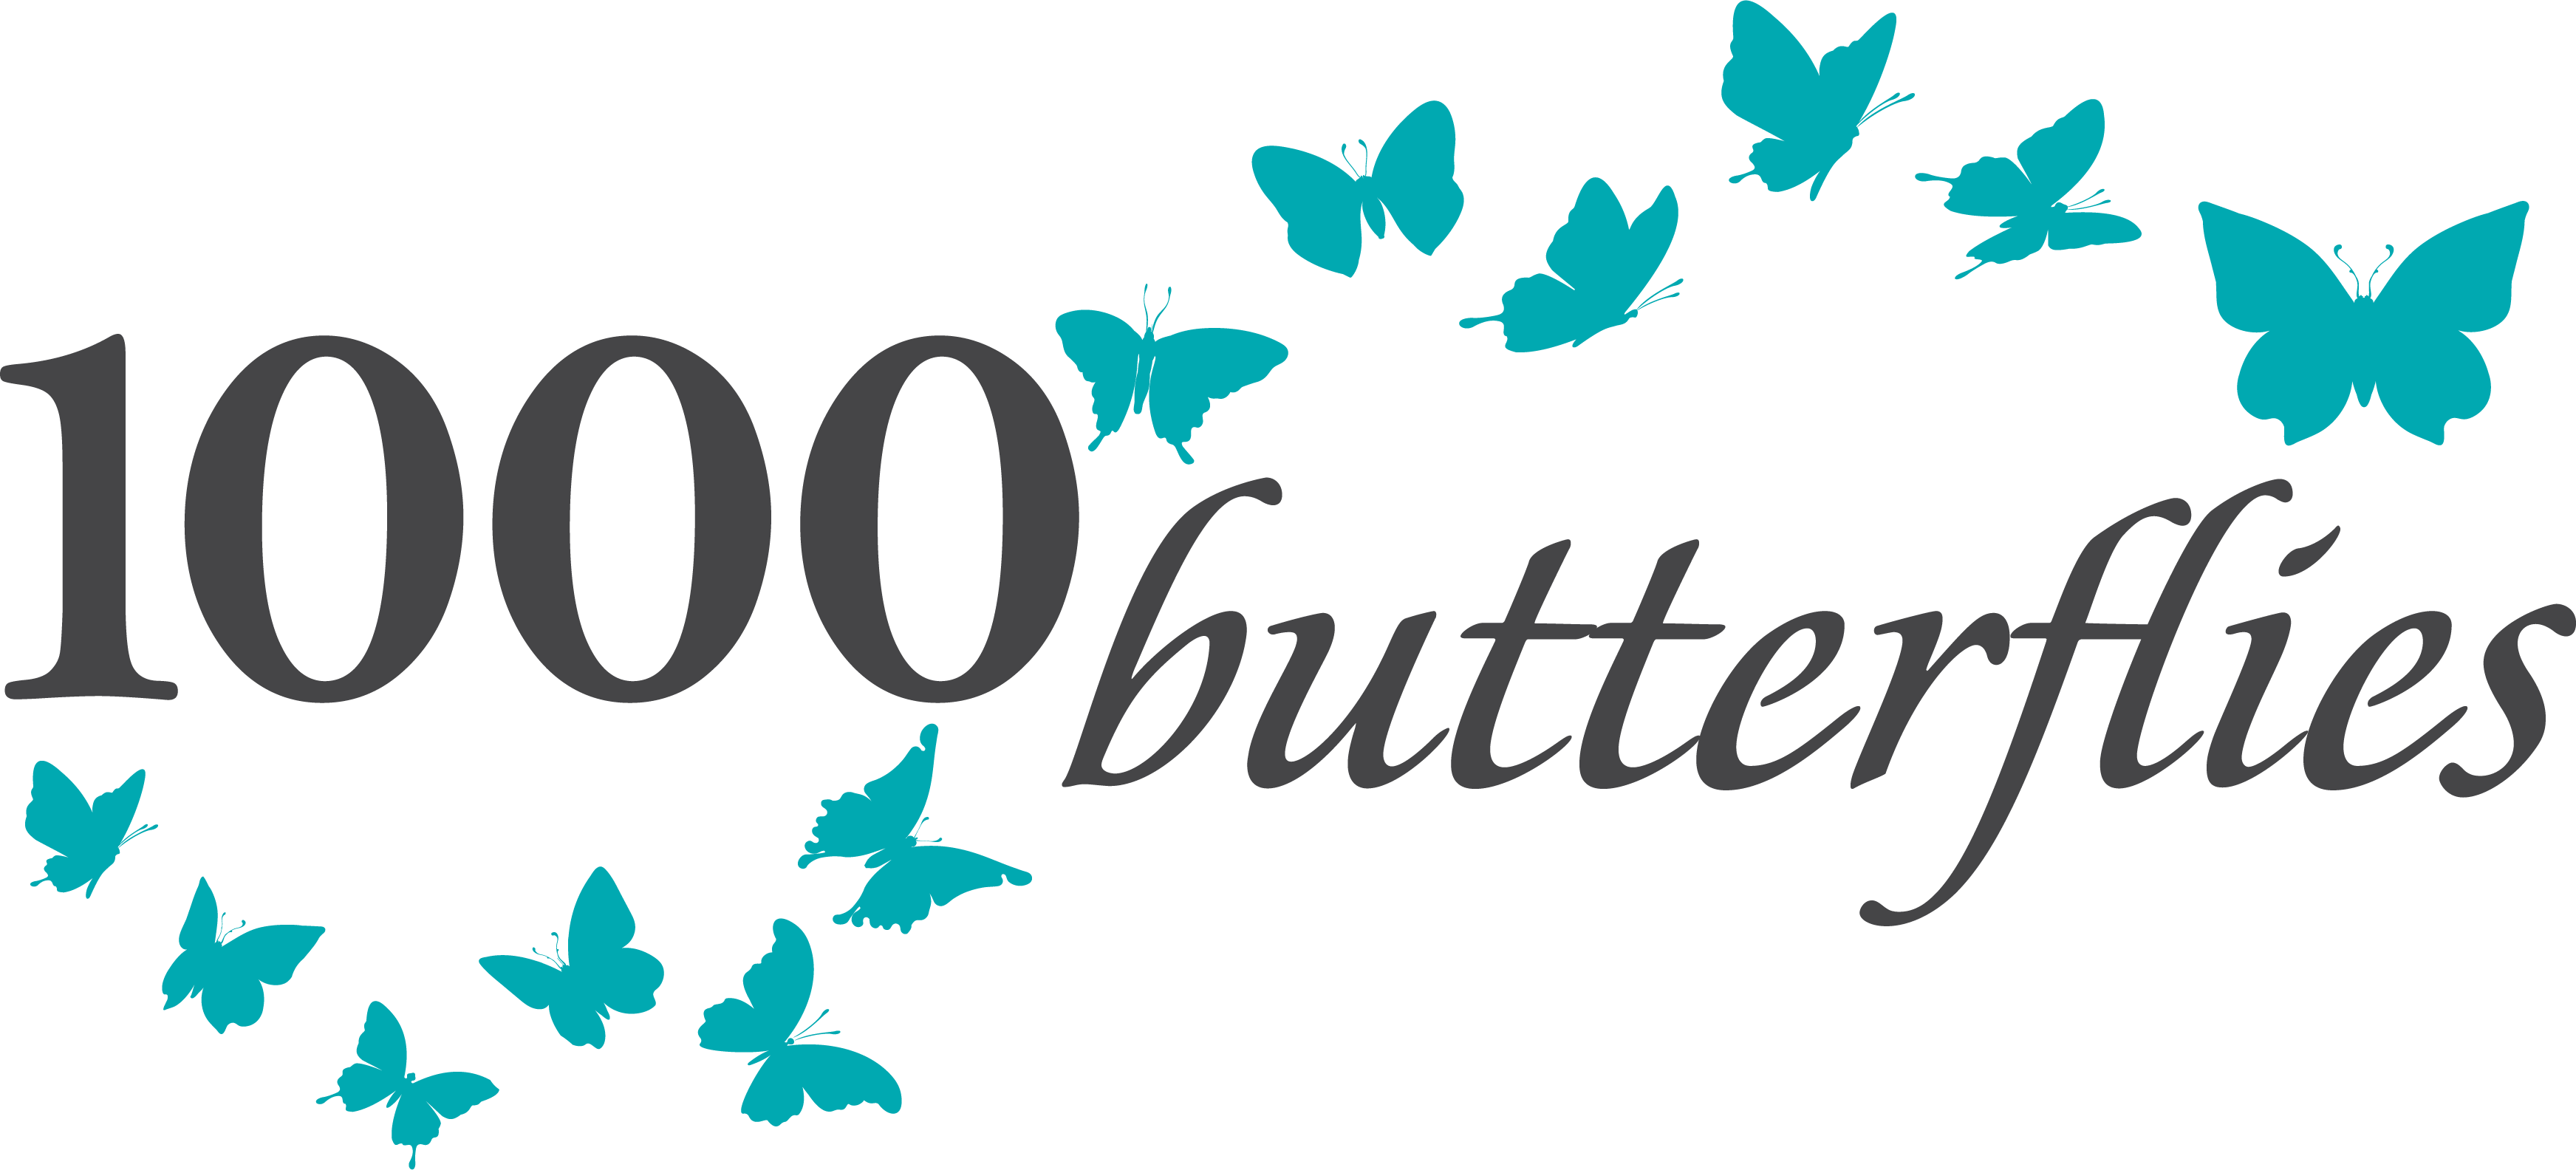 1000butterflies - april 15 2021